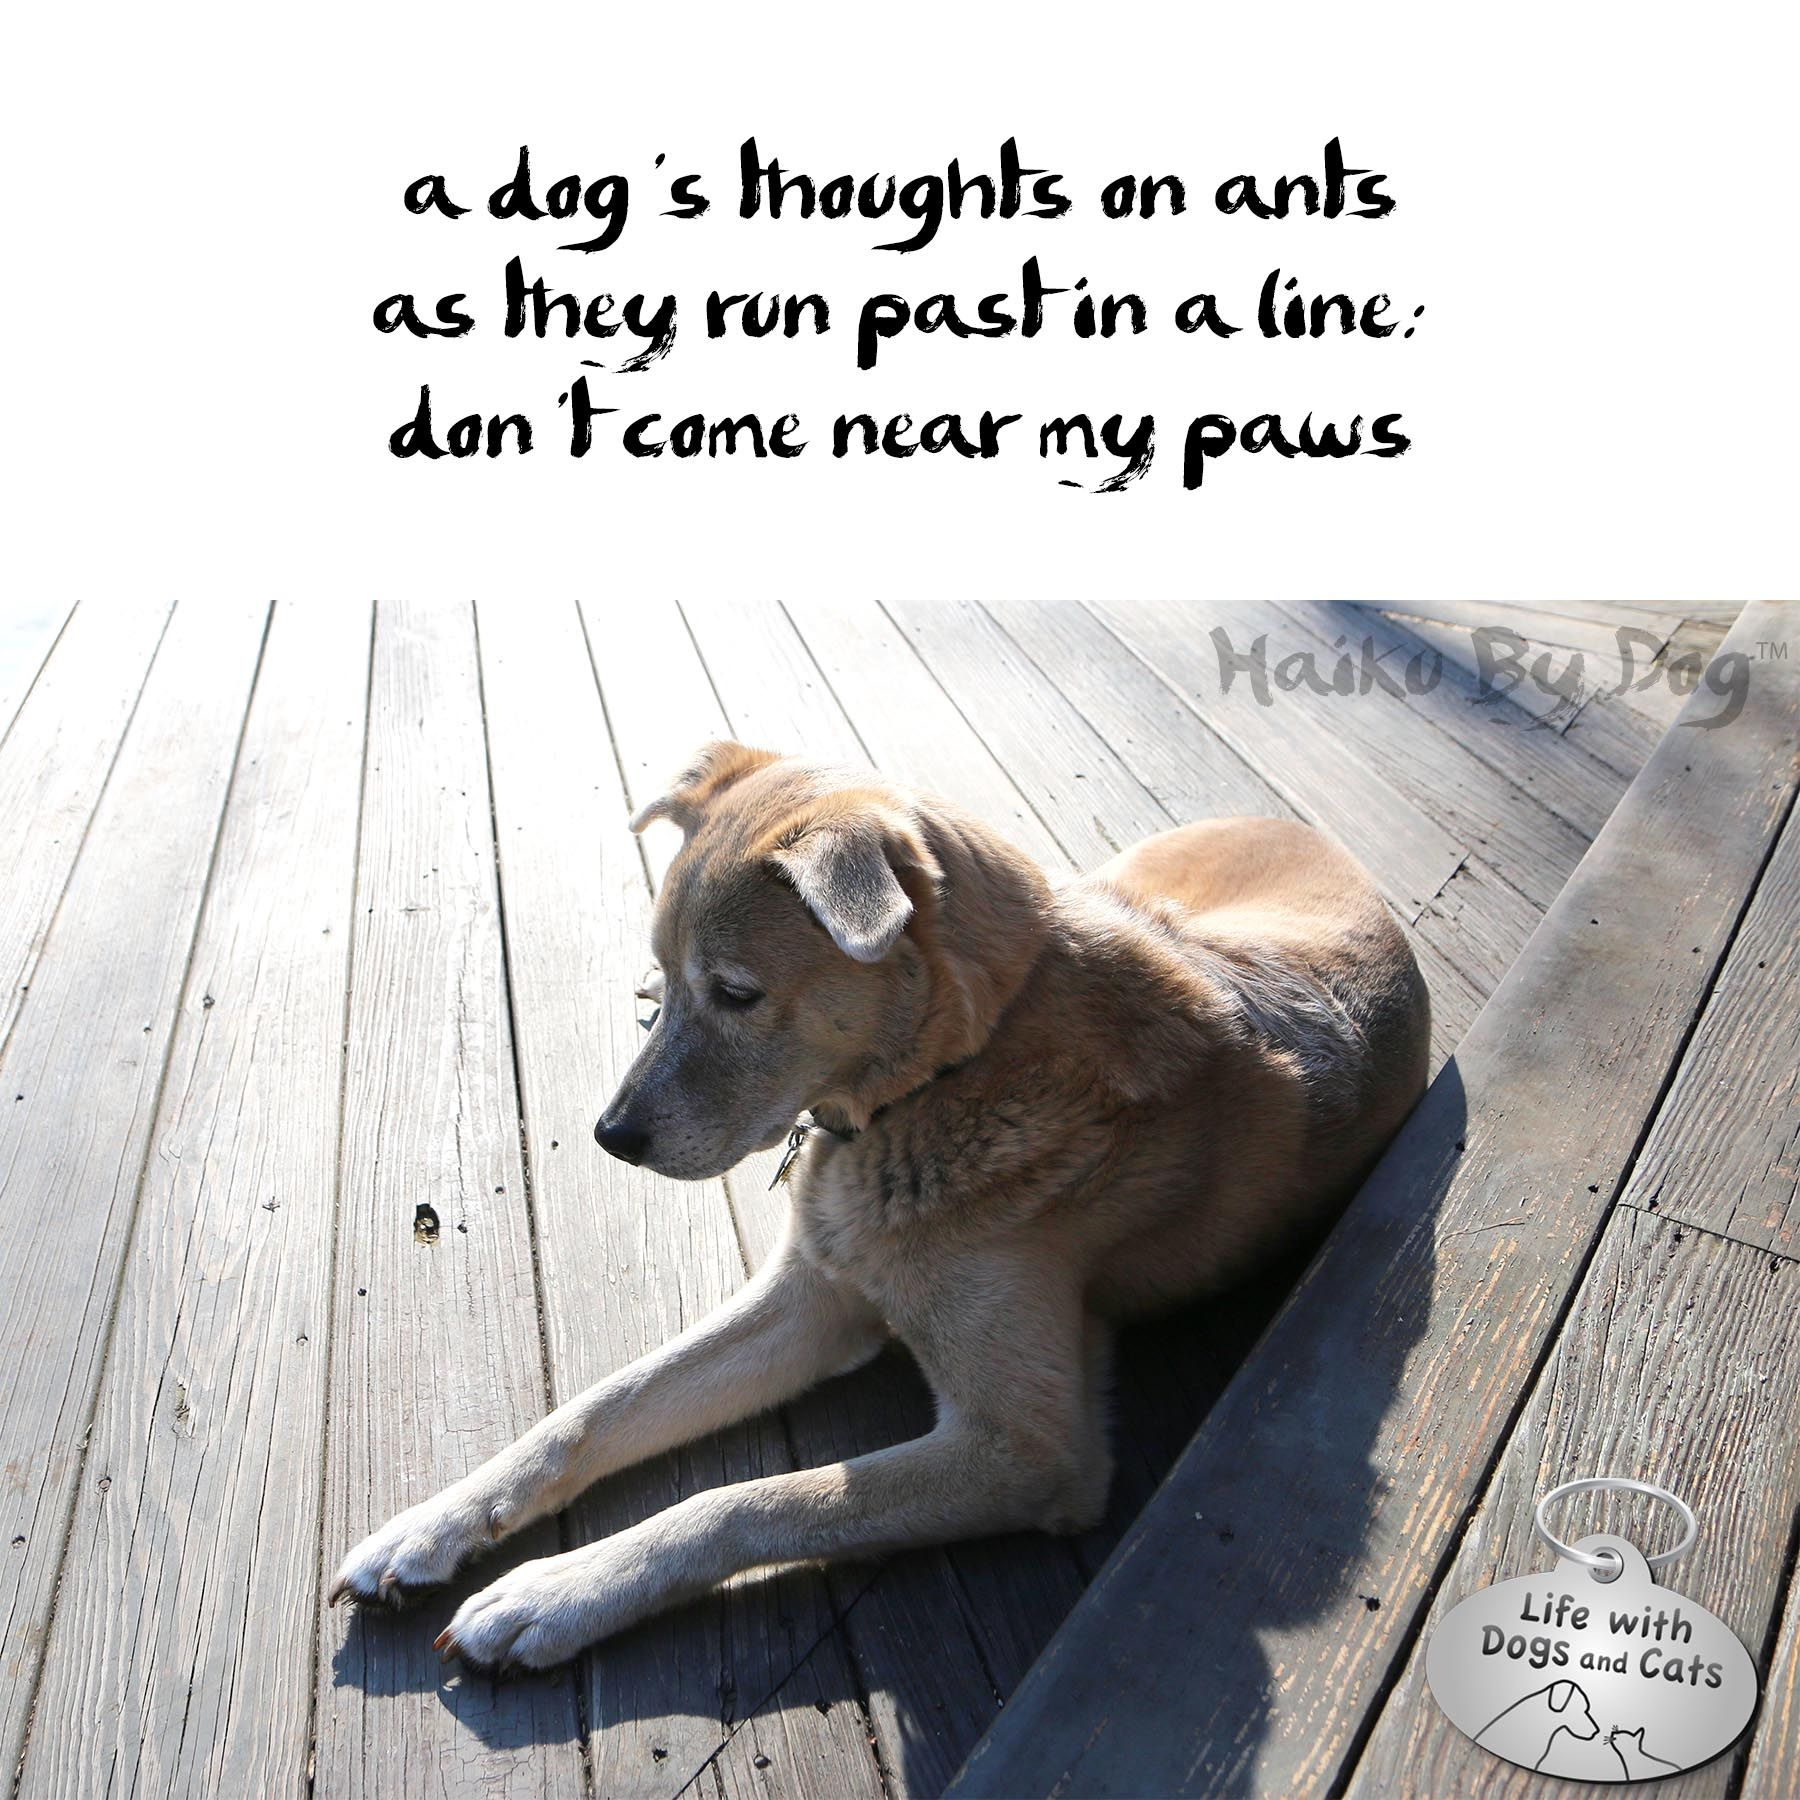 Haiku By Dog Ants Dog Cat Dogs Dog Poetry